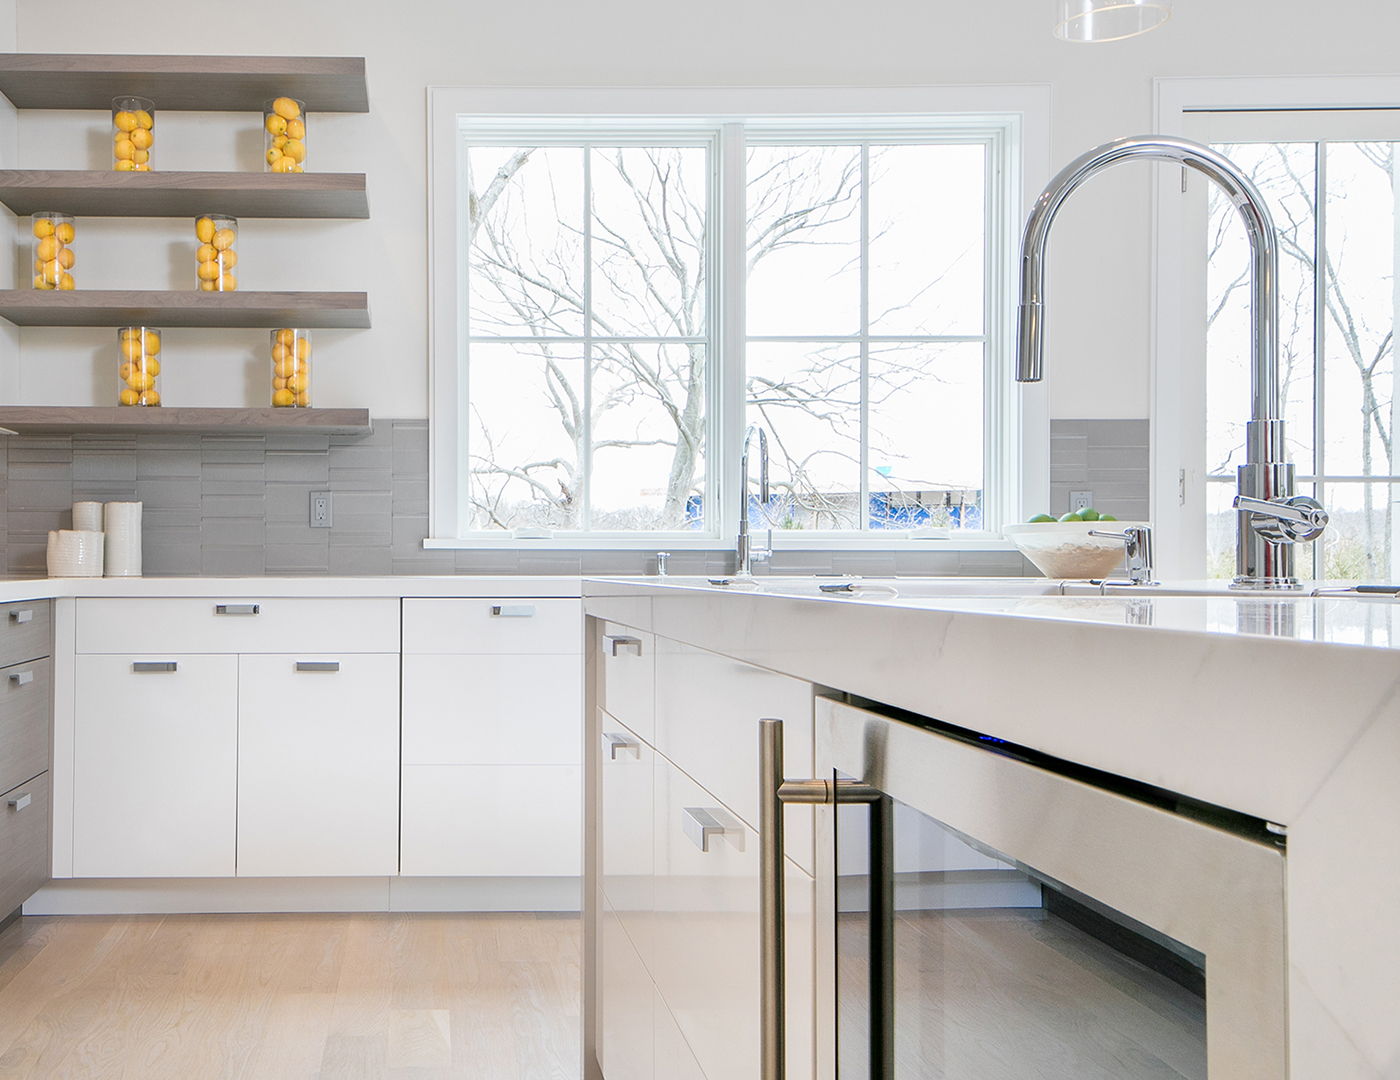 Gorgeous counter & shelves with custom cabinetry